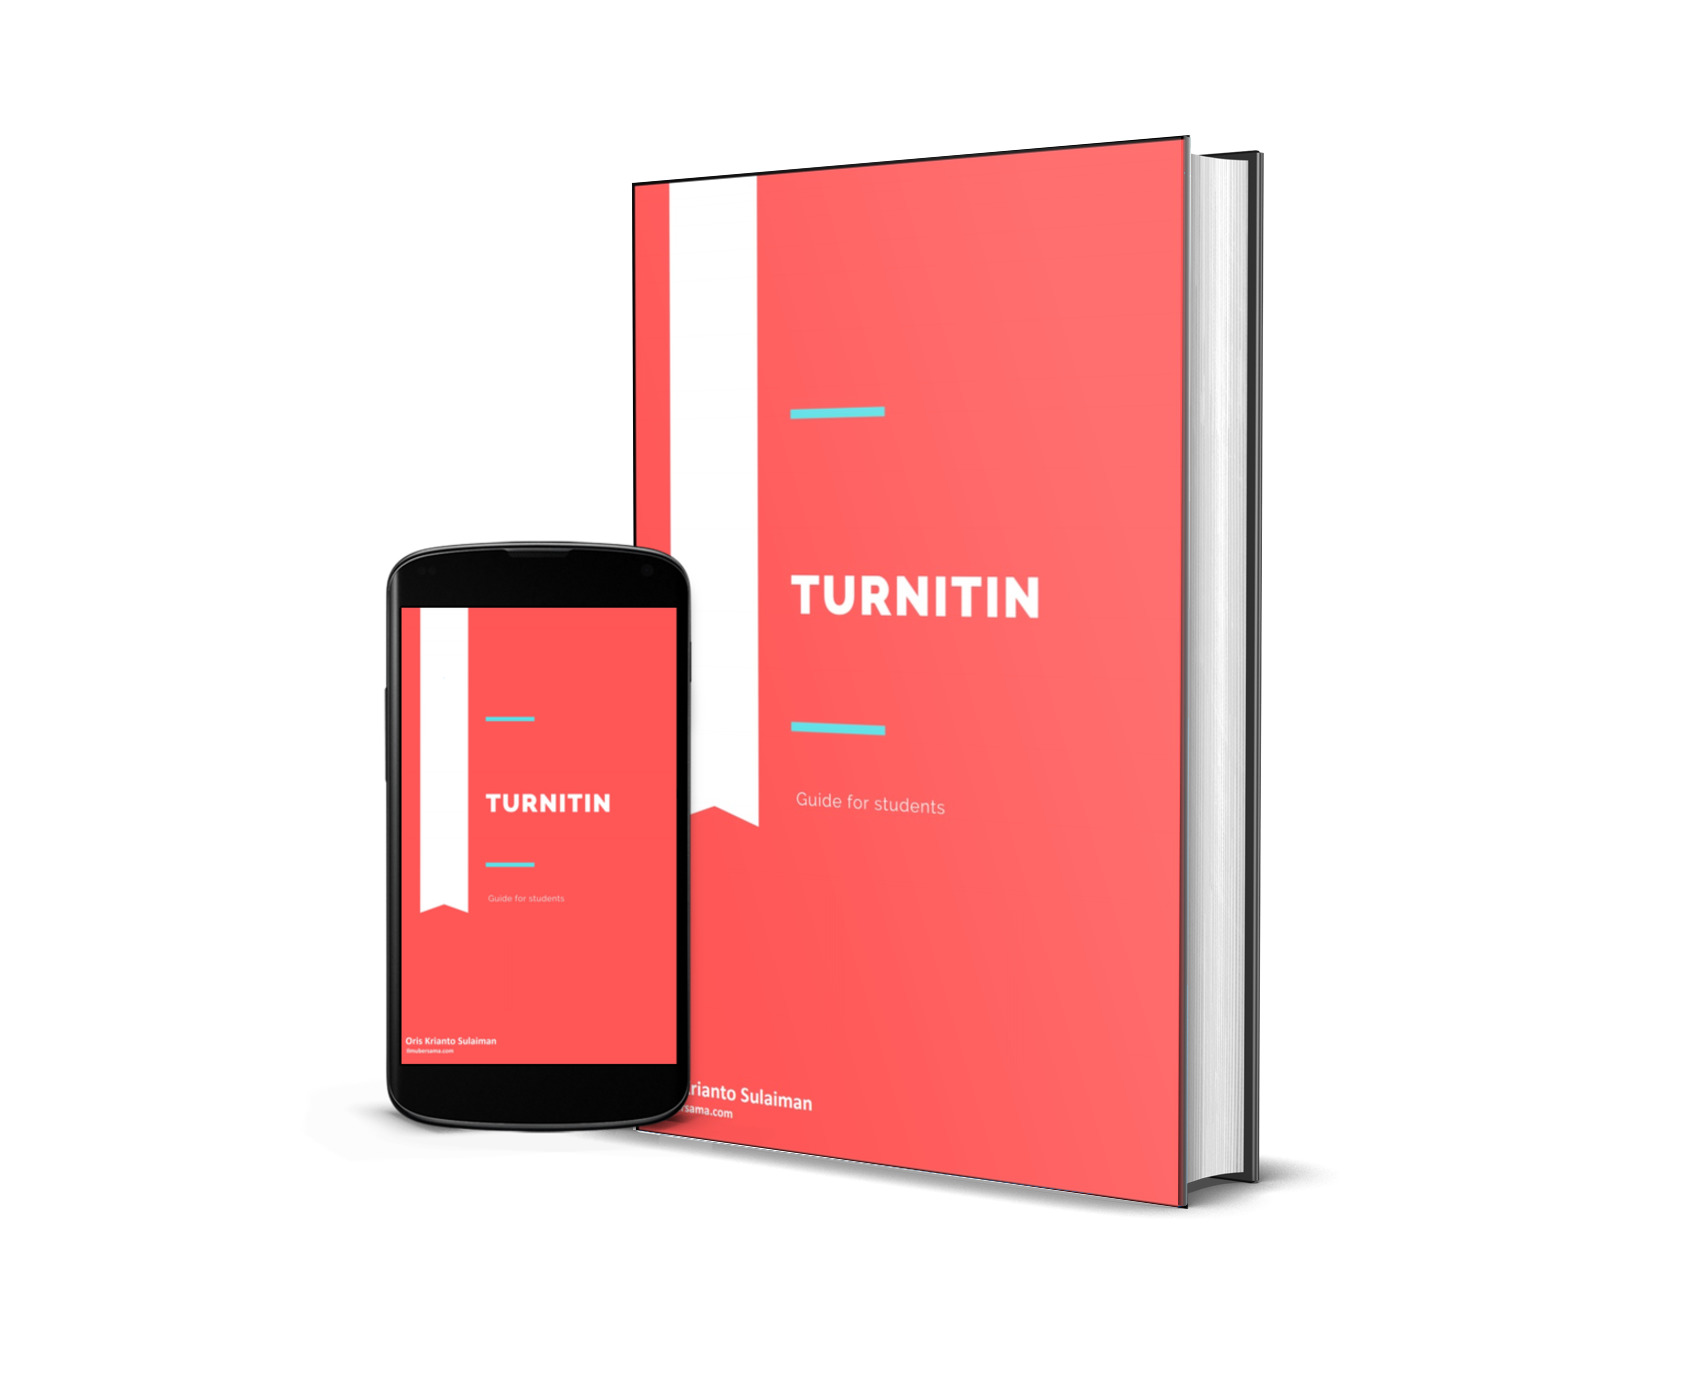 Turnitin – Guide for Students